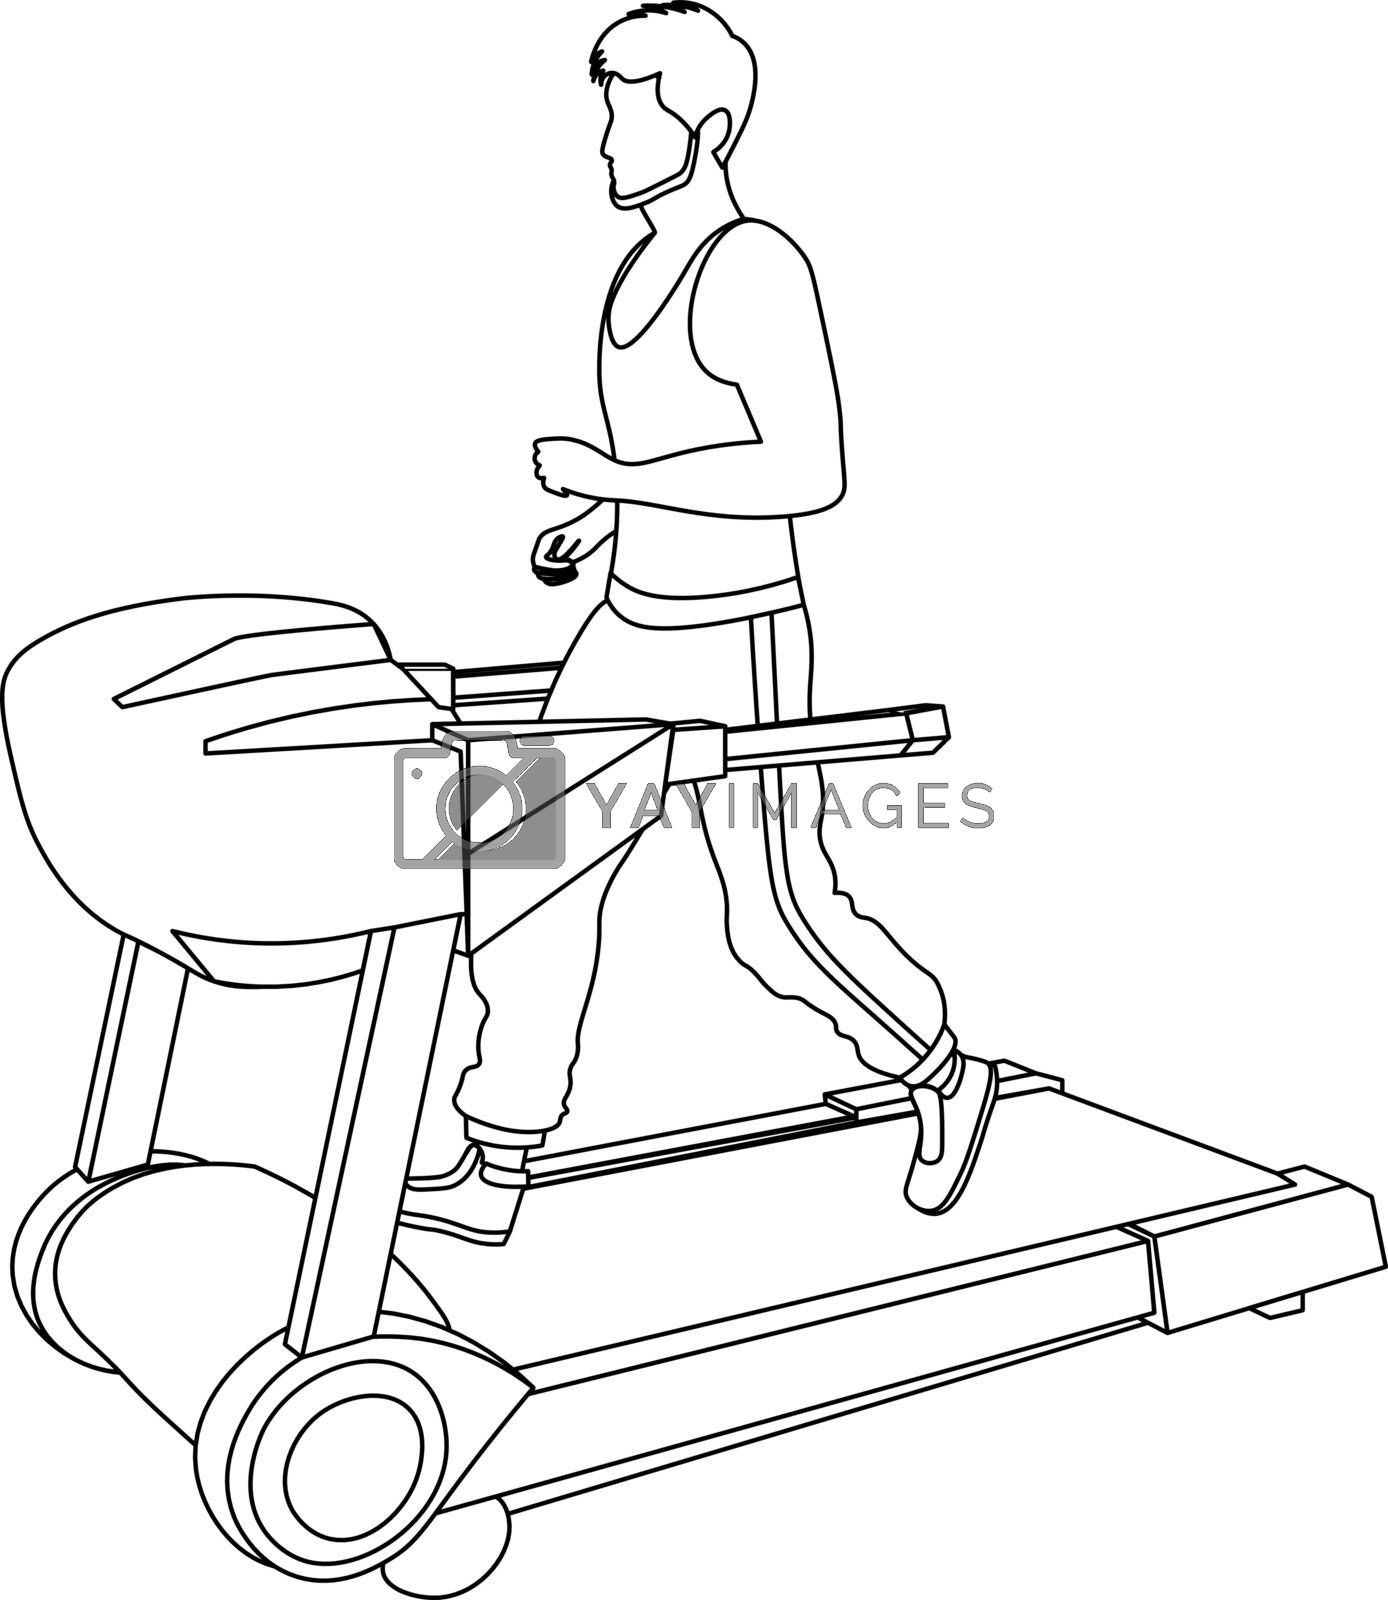 Royalty free image of line art of faceless man running on the treadmill by paranoido